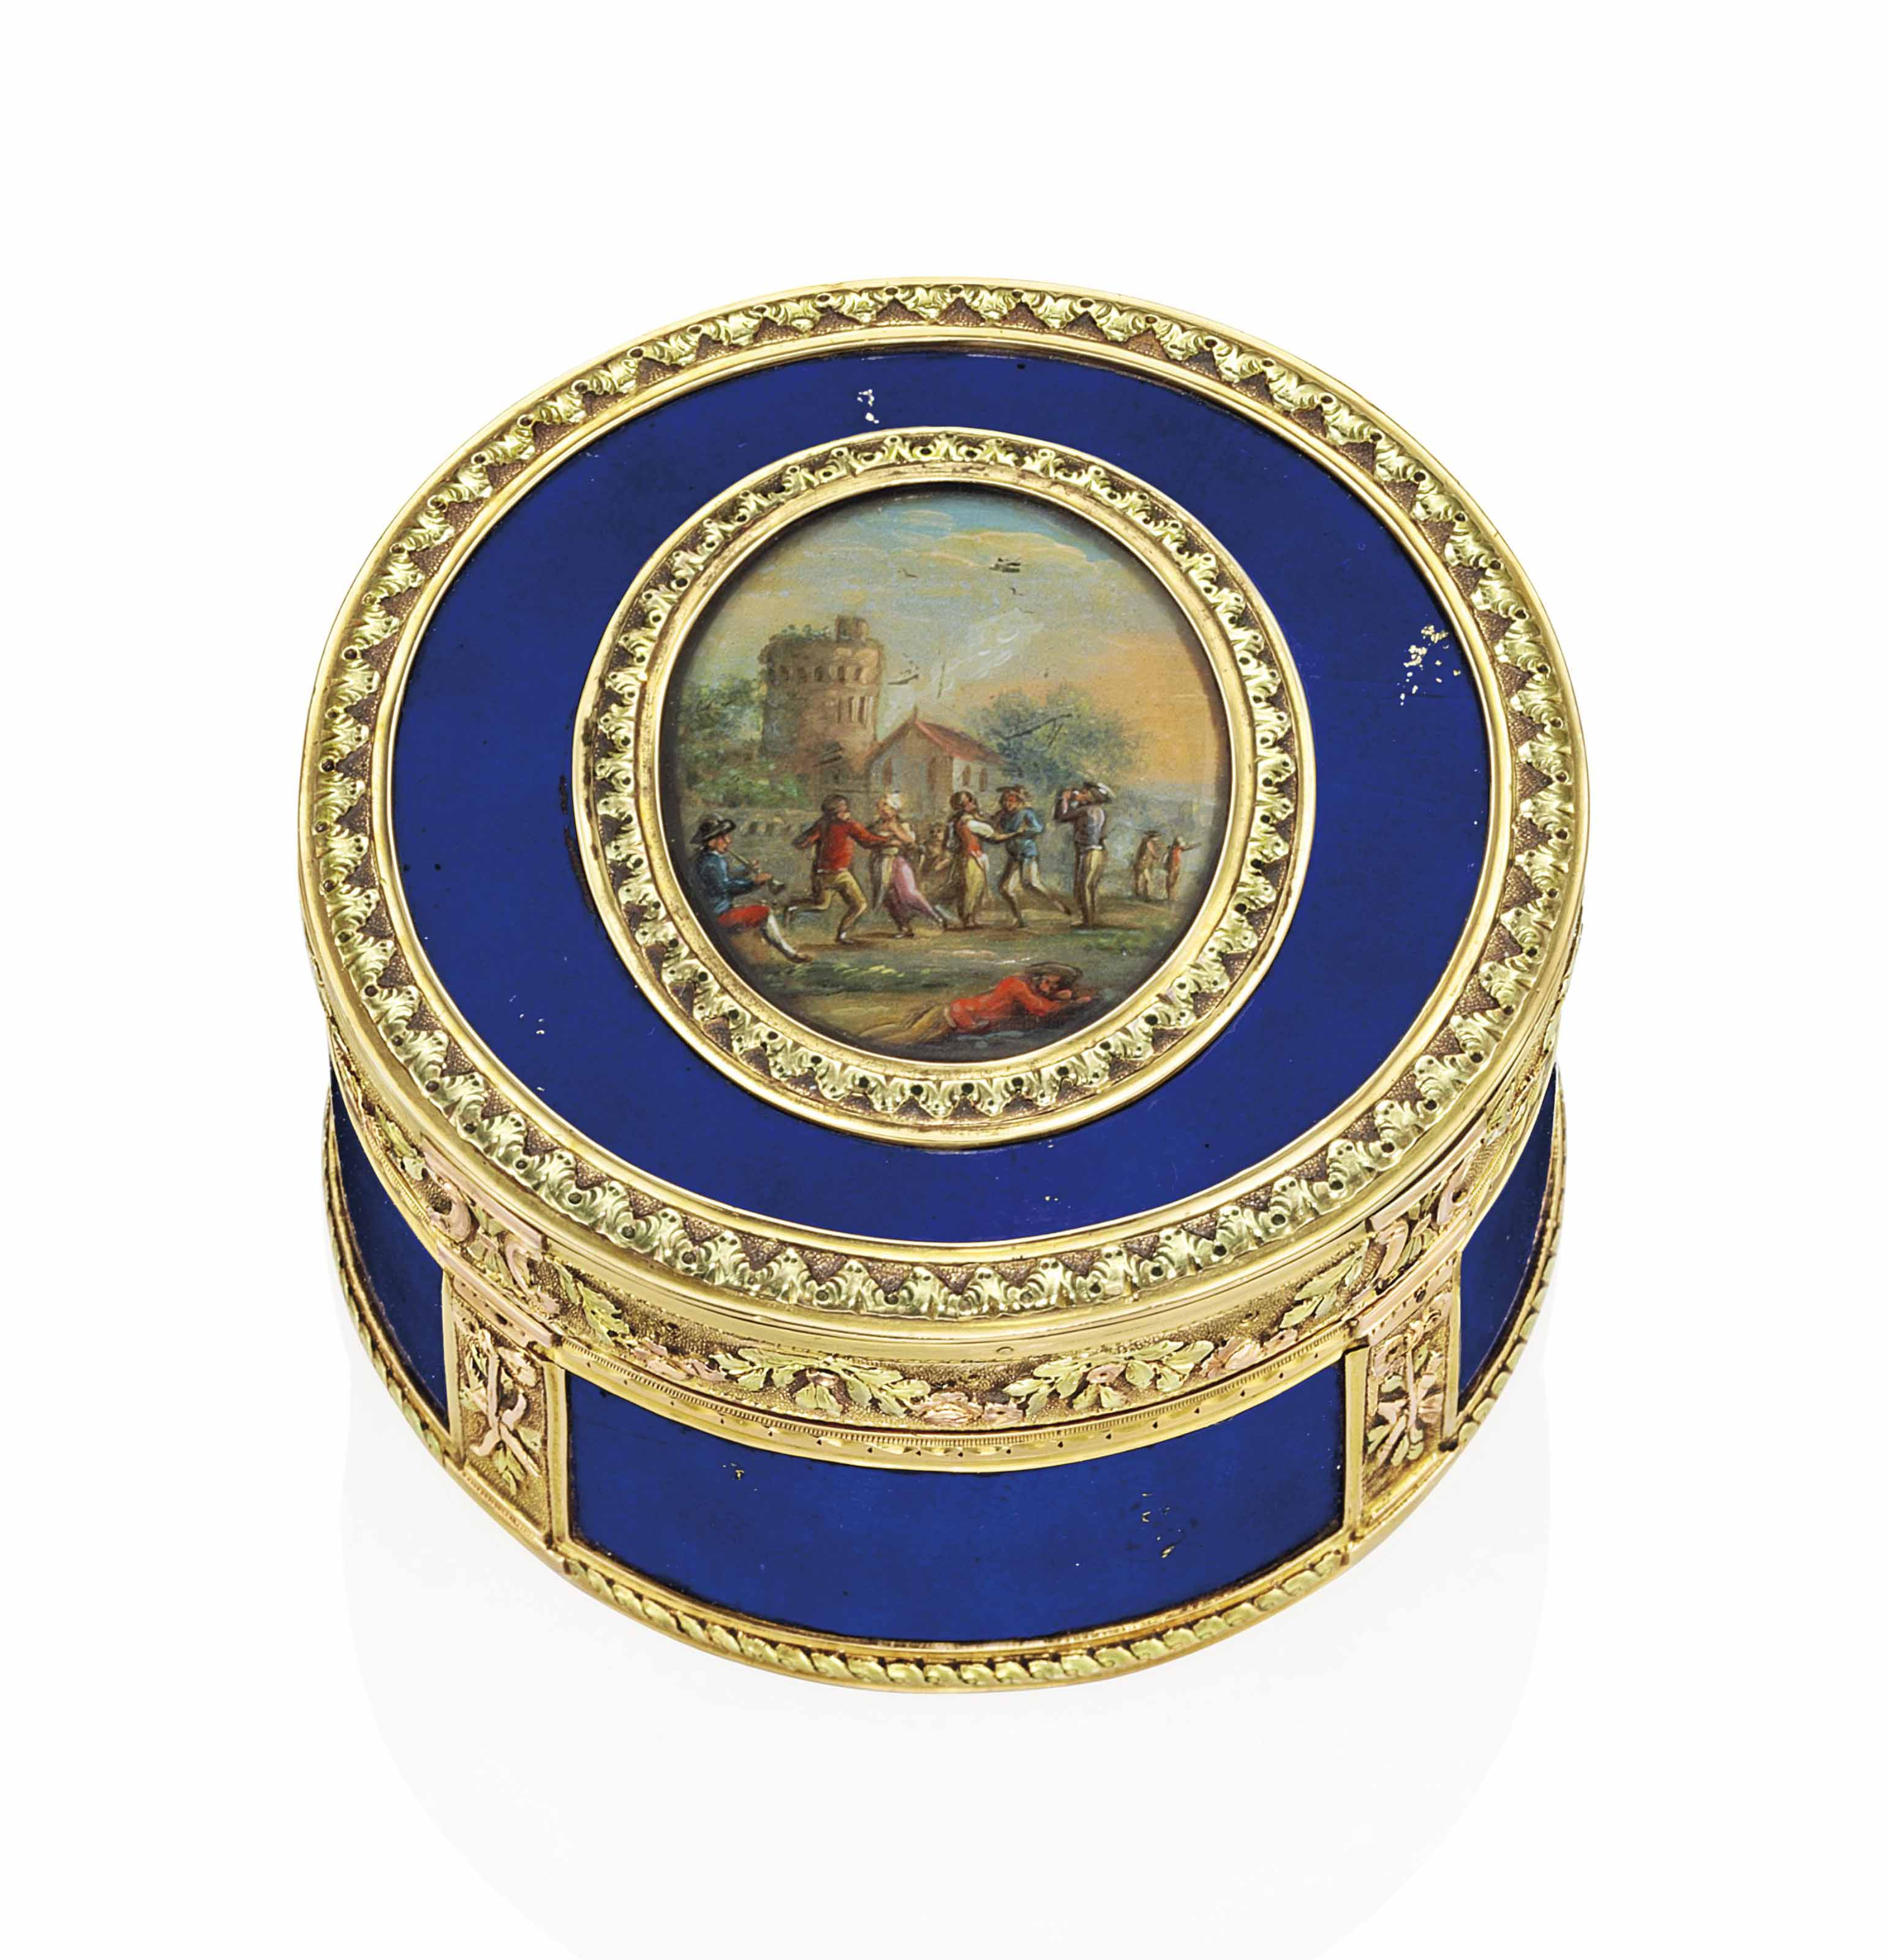 A LOUIS XVI VARI-COLOUR GOLD AND BLUE-GLASS SNUFF-BOX SET WITH A MINIATURE